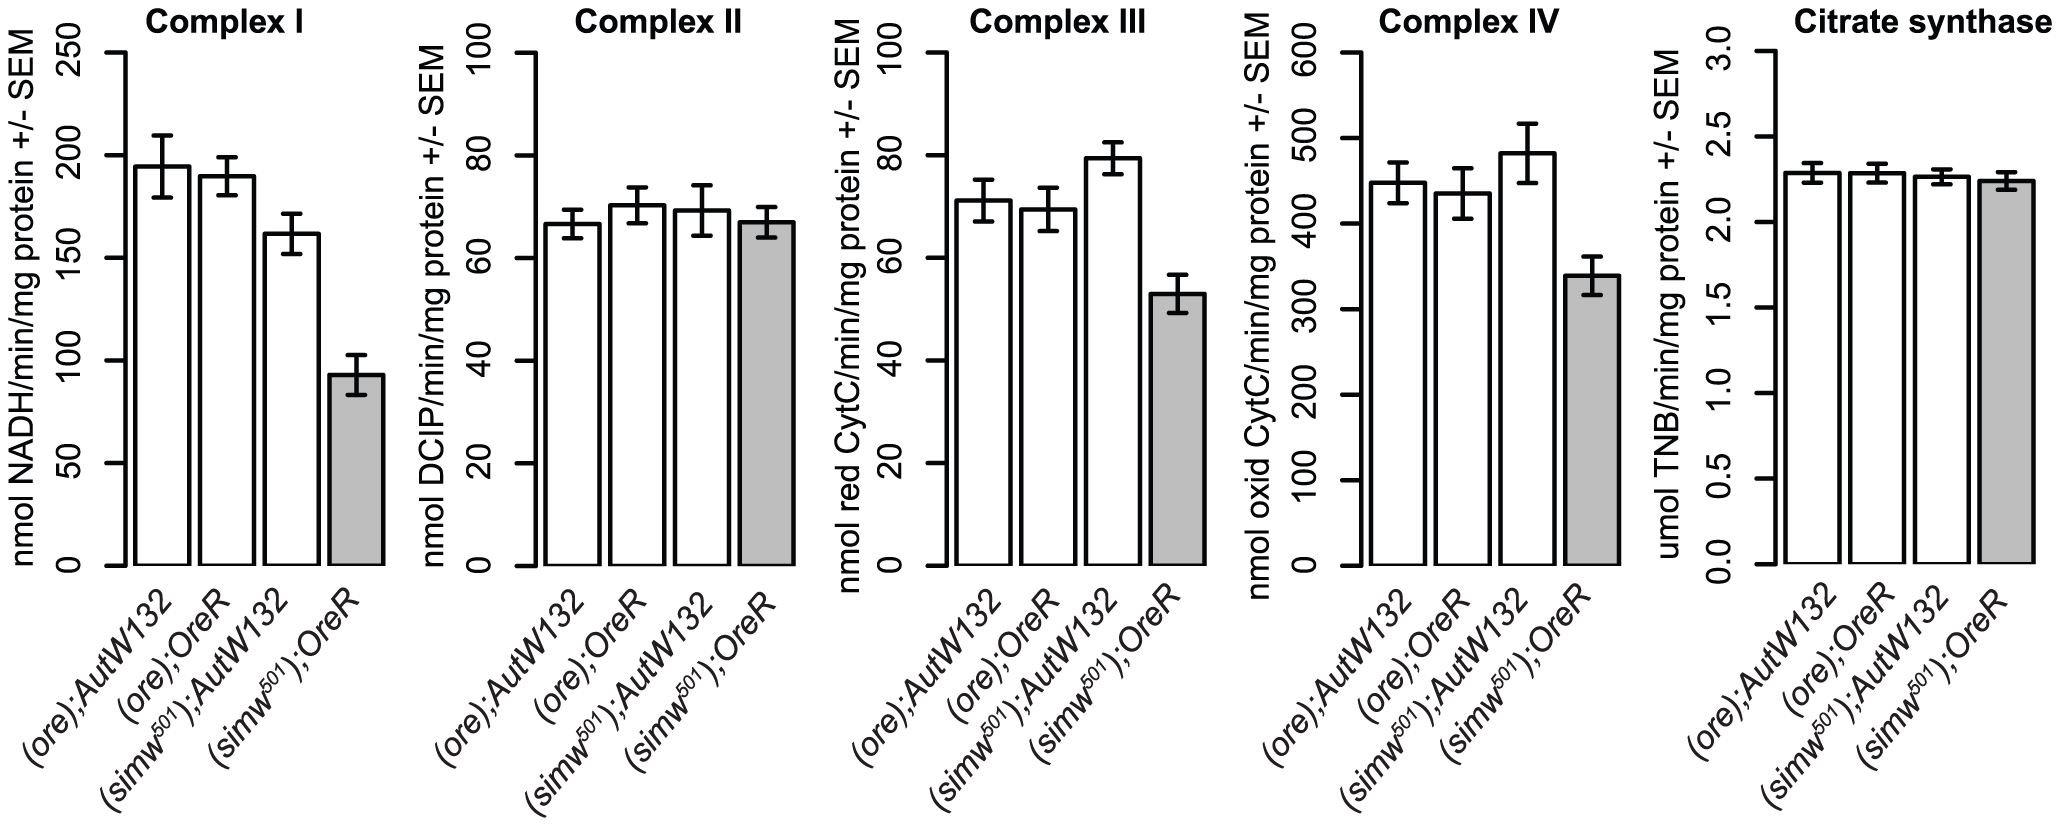 The mitochondrial-nuclear incompatibility decreases the activity of OXPHOS complexes that are mitochondrially translated.